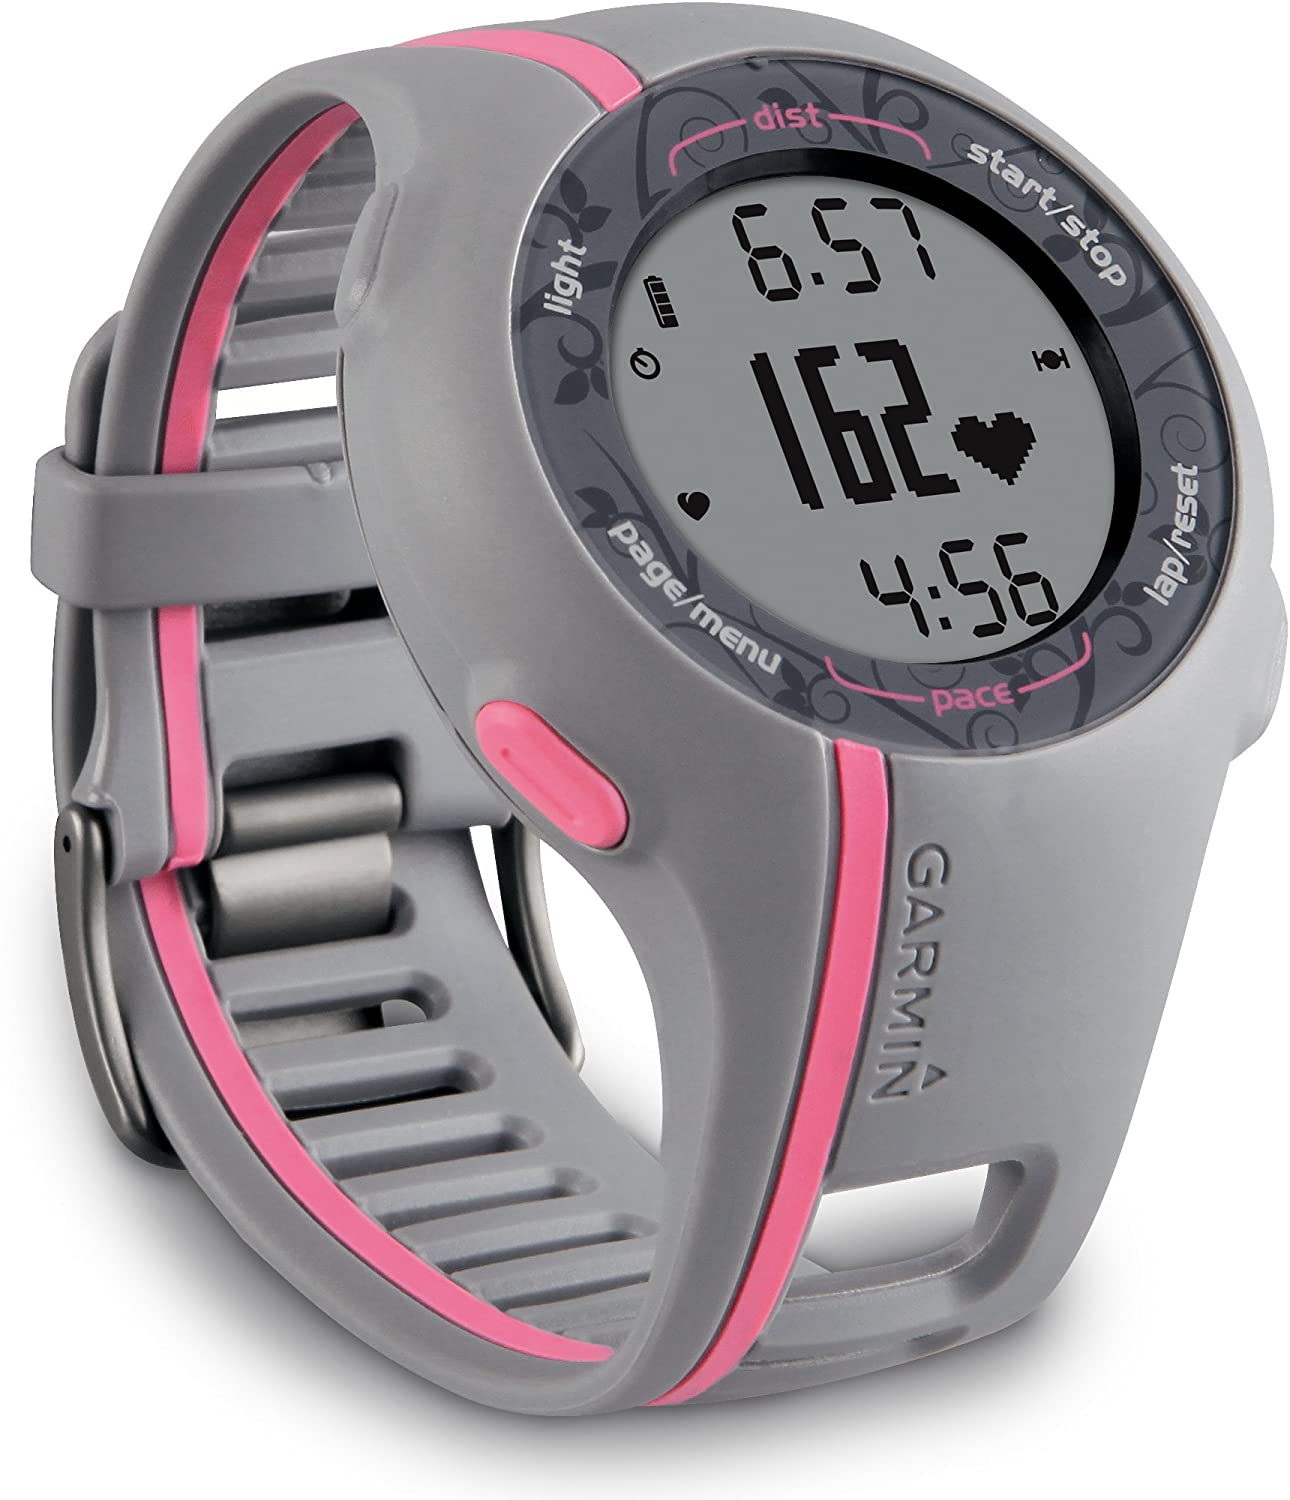 series look first new connect watches unveils hr update garmin rate running